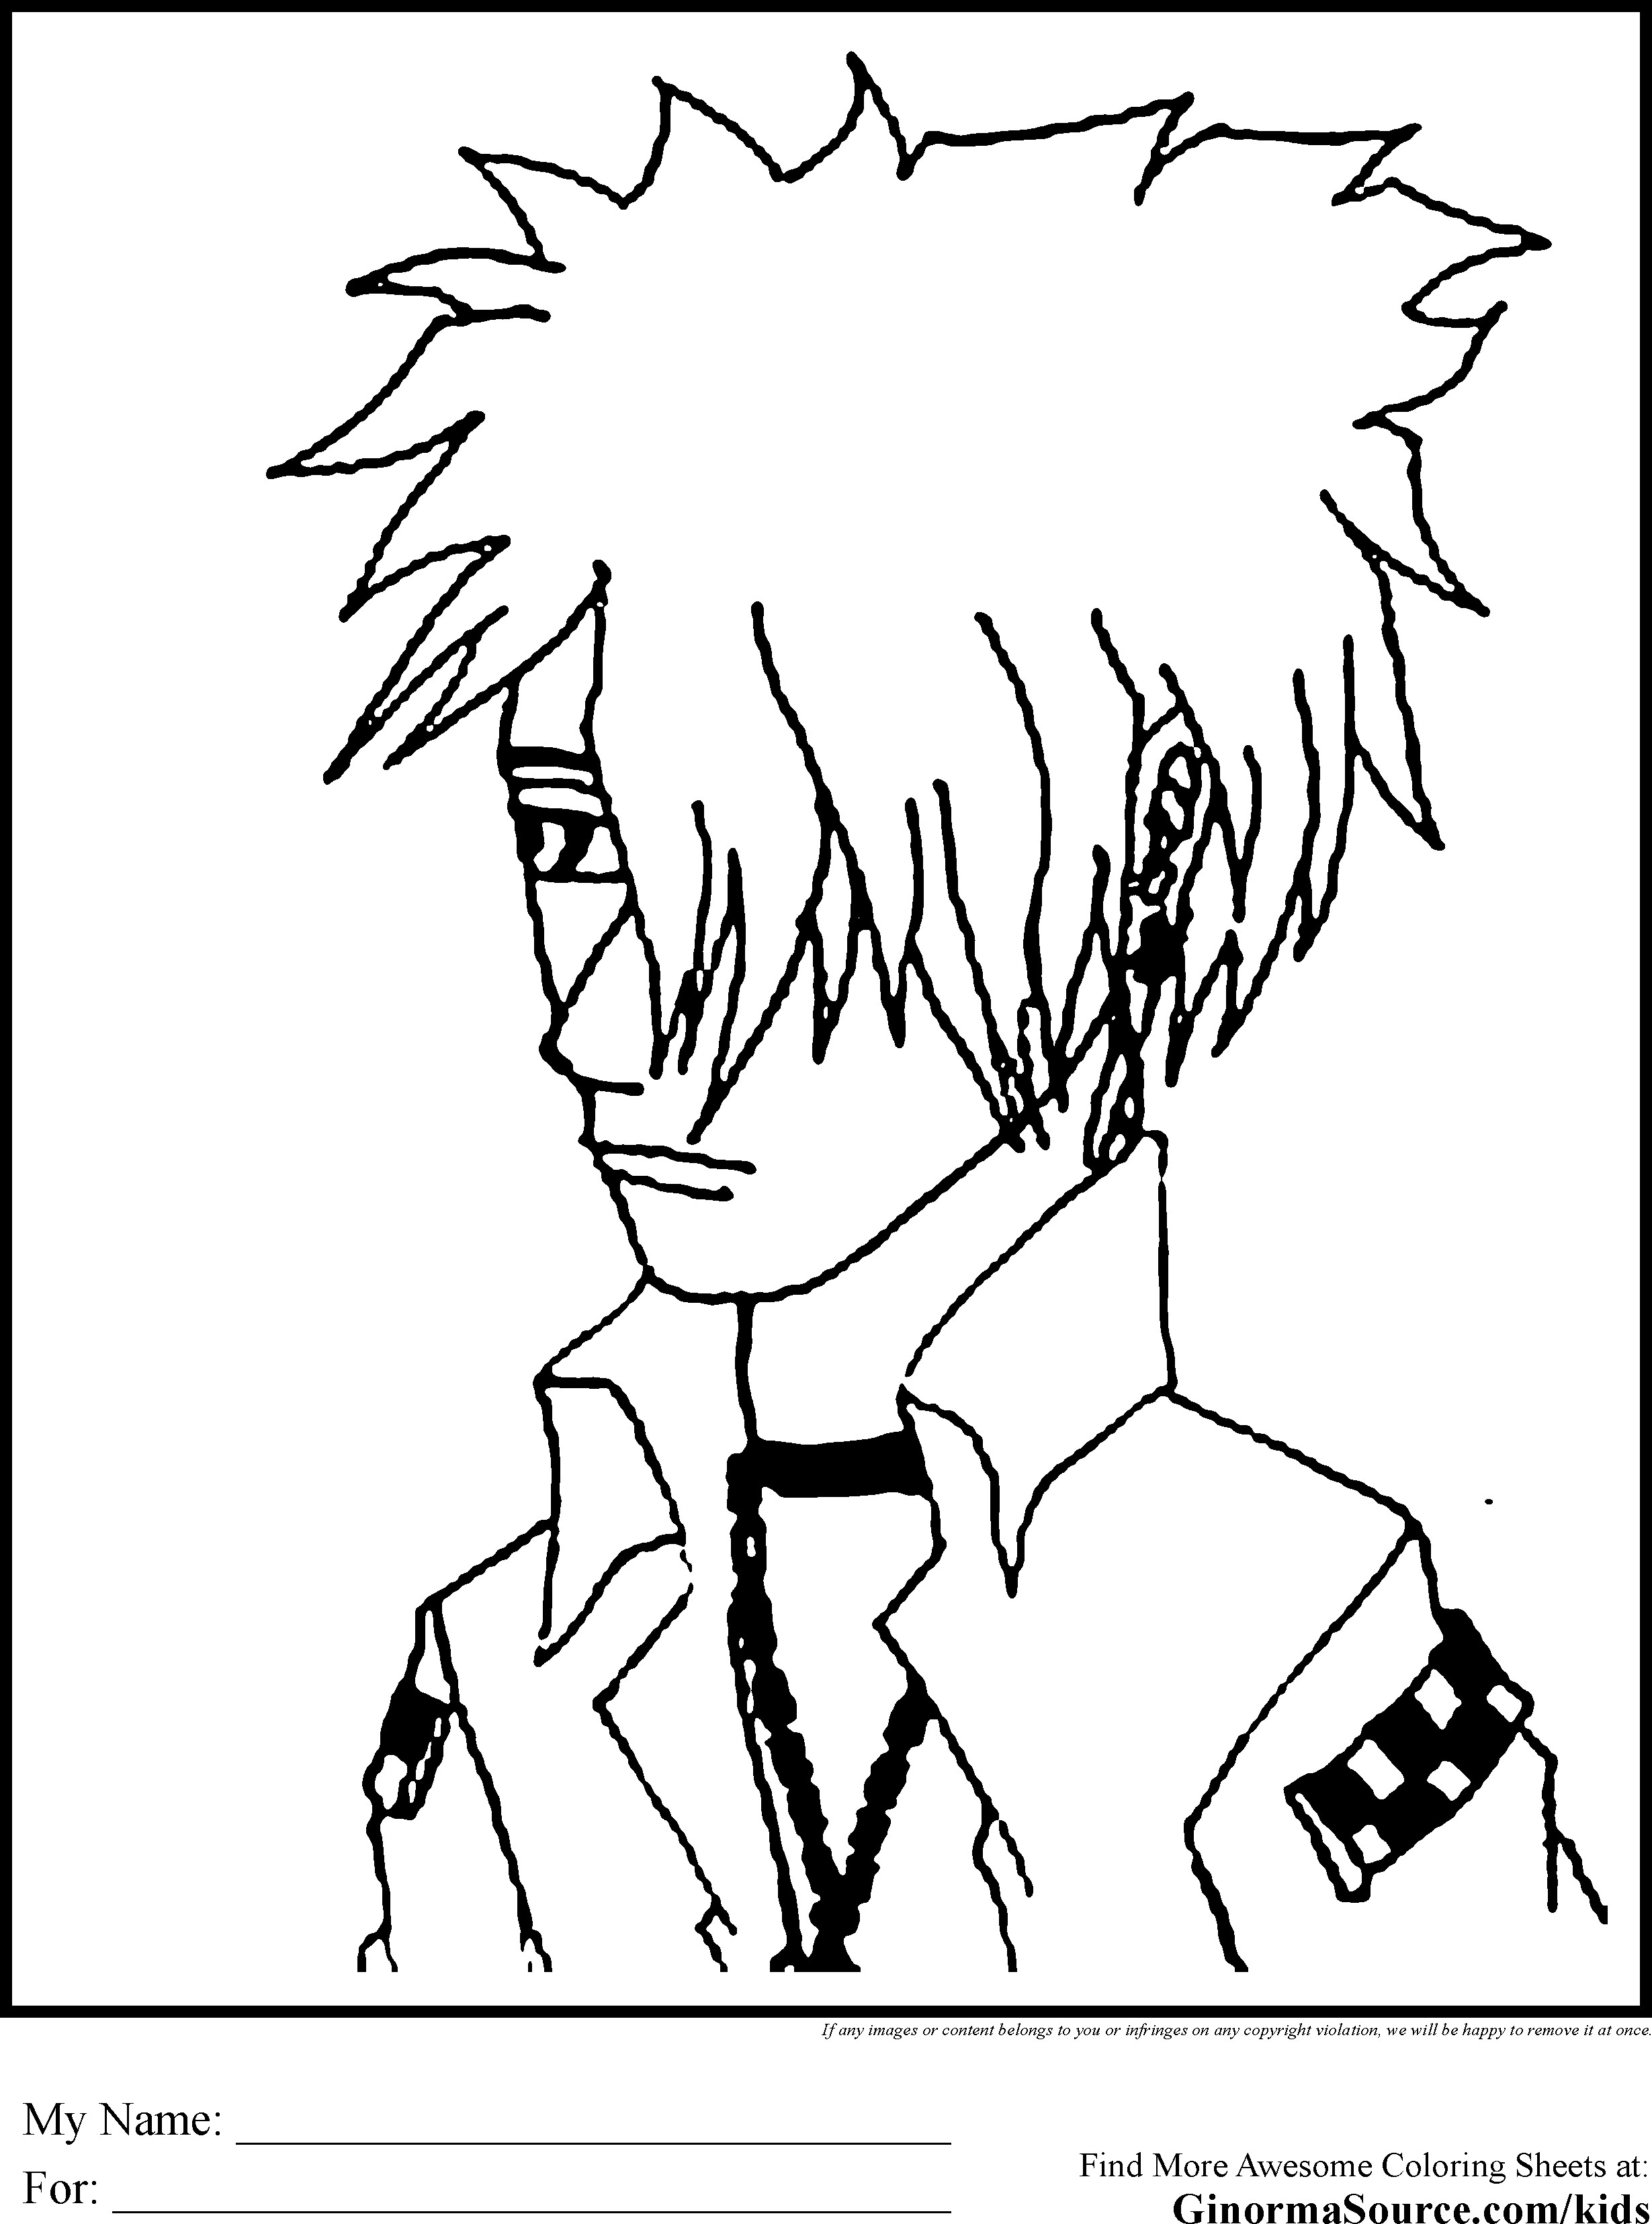 Emo Boys Coloring Pages  Emo Coloring Pages Boy GINORMAsource Kids